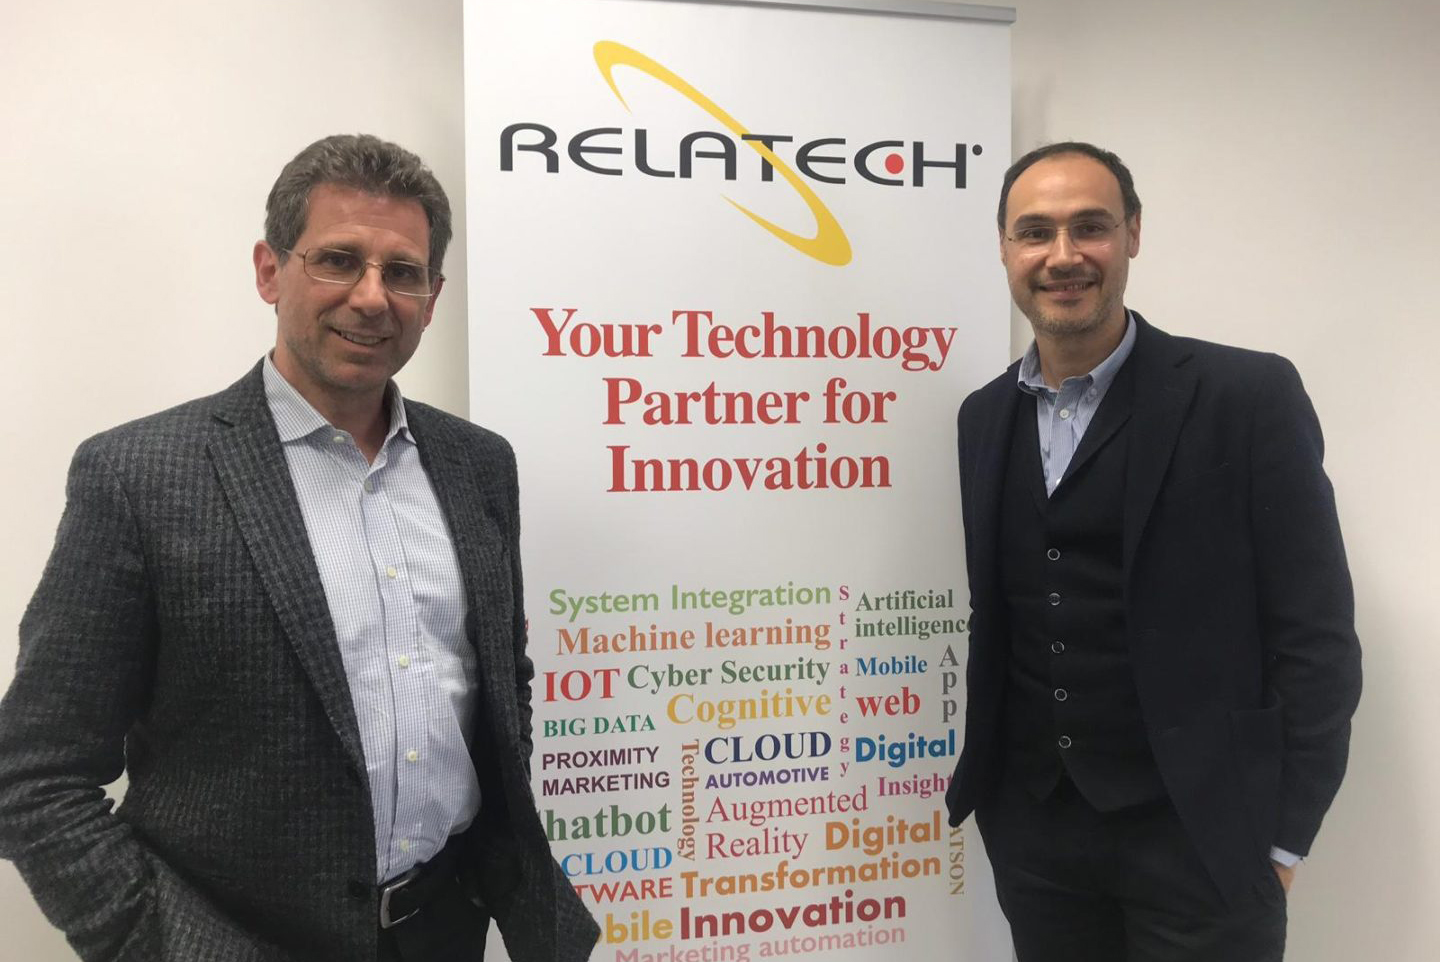 Angelo Aloia, Innovation and Solution Manager of Relatech